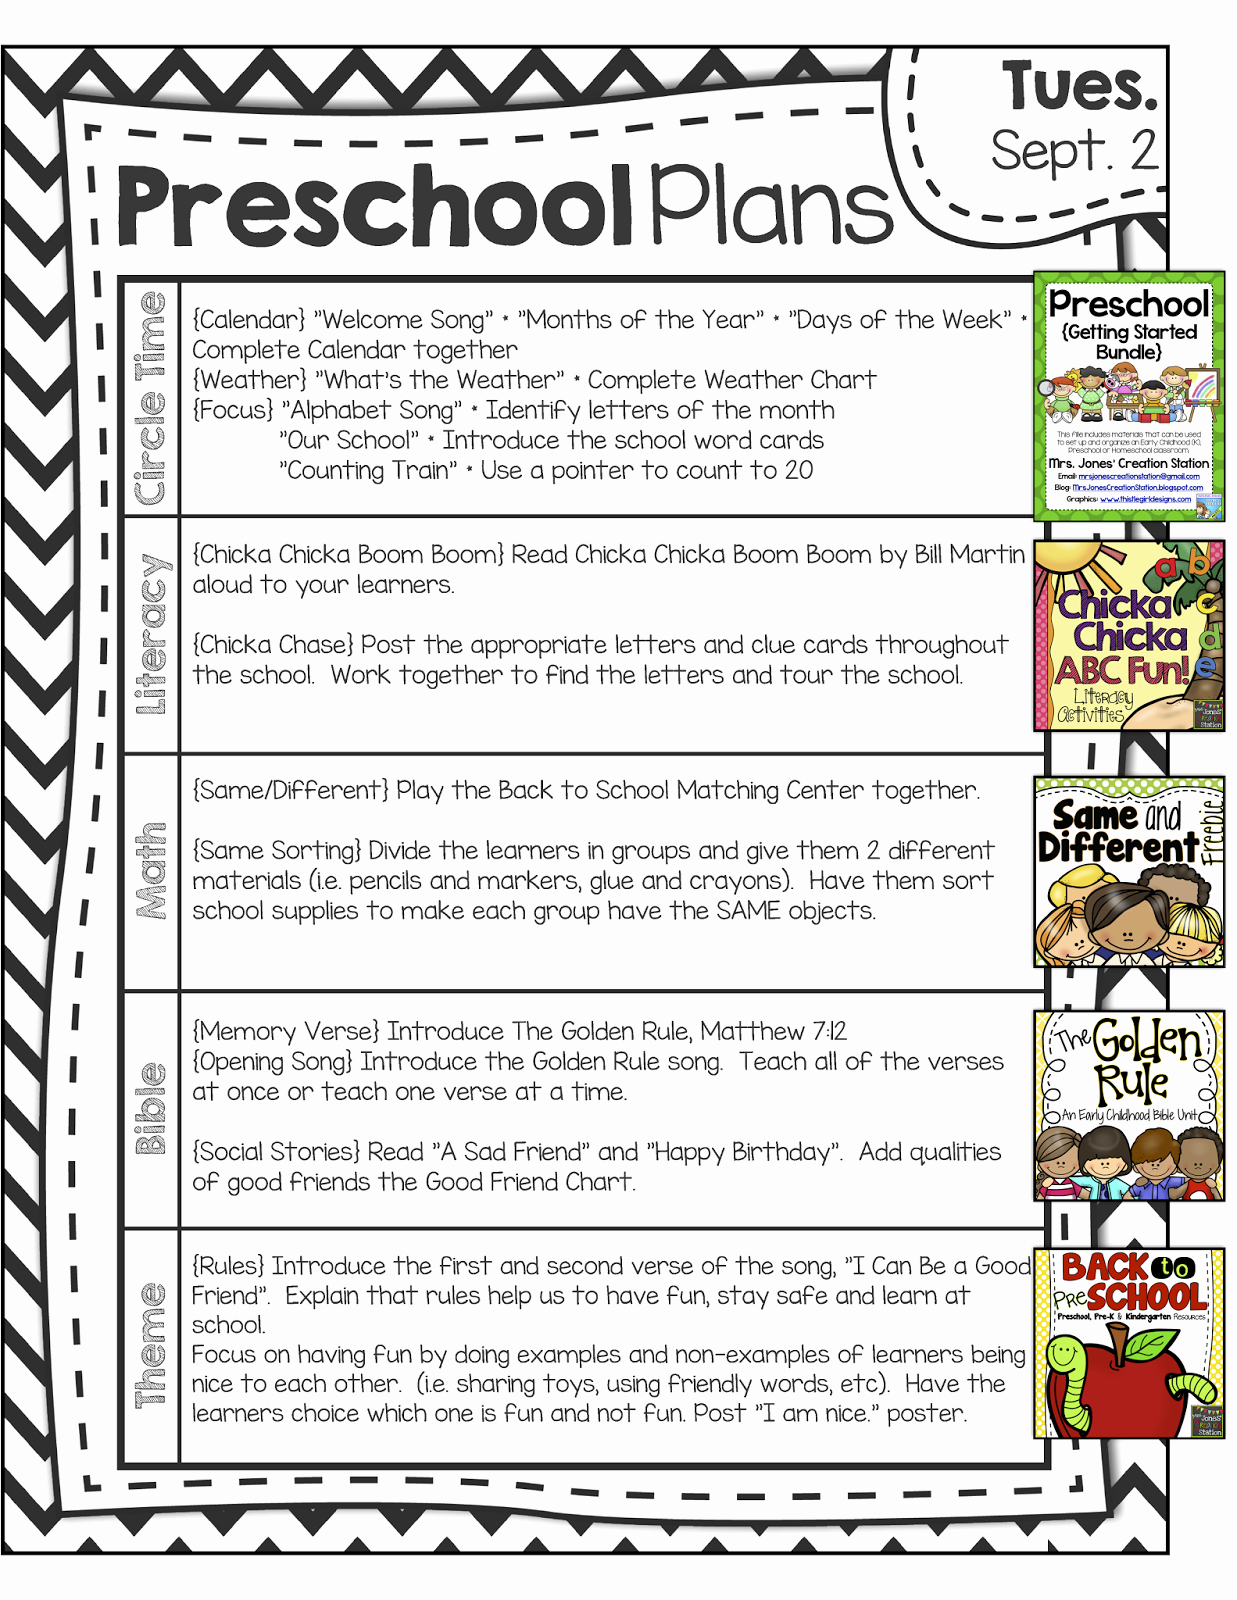 Pre Kindergarten Lesson Plan Template Lovely Windows 10 Product Activation Keys All Versions